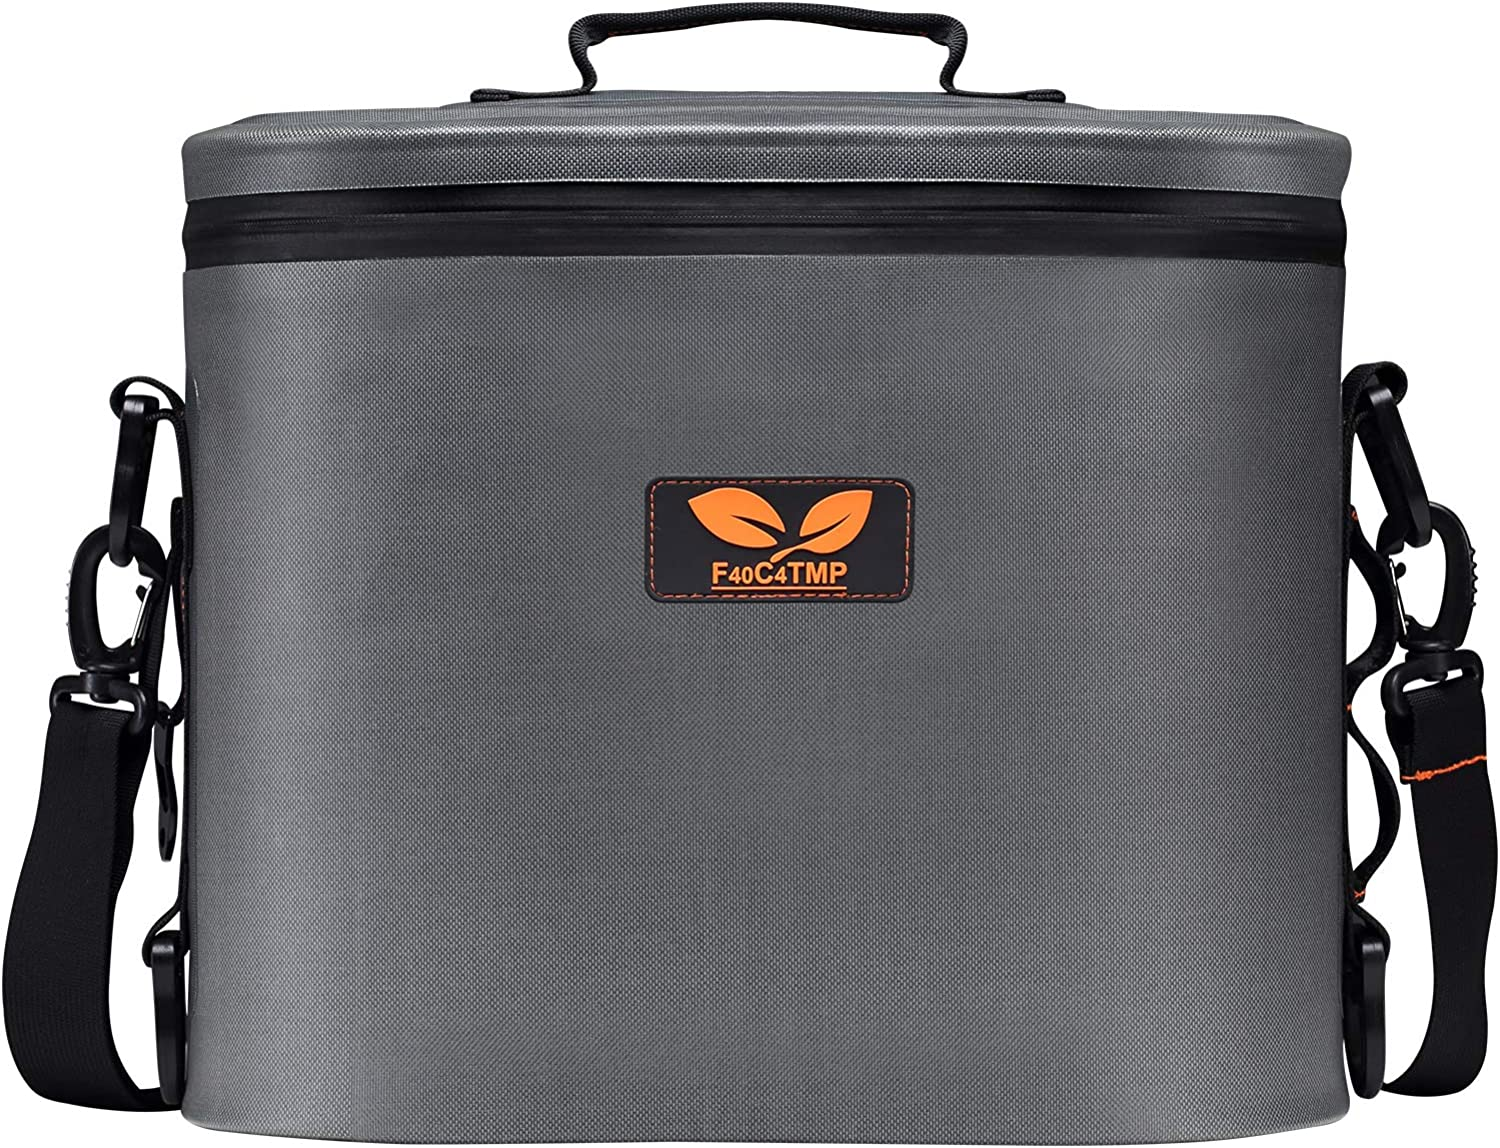 F40C4TMP Soft Sided Cooler 11 Cans, Soft Pack Cooler Ice Chest 30 Hours Cold for Beach Party, Hiking, Camping and Any Outdoor Activities